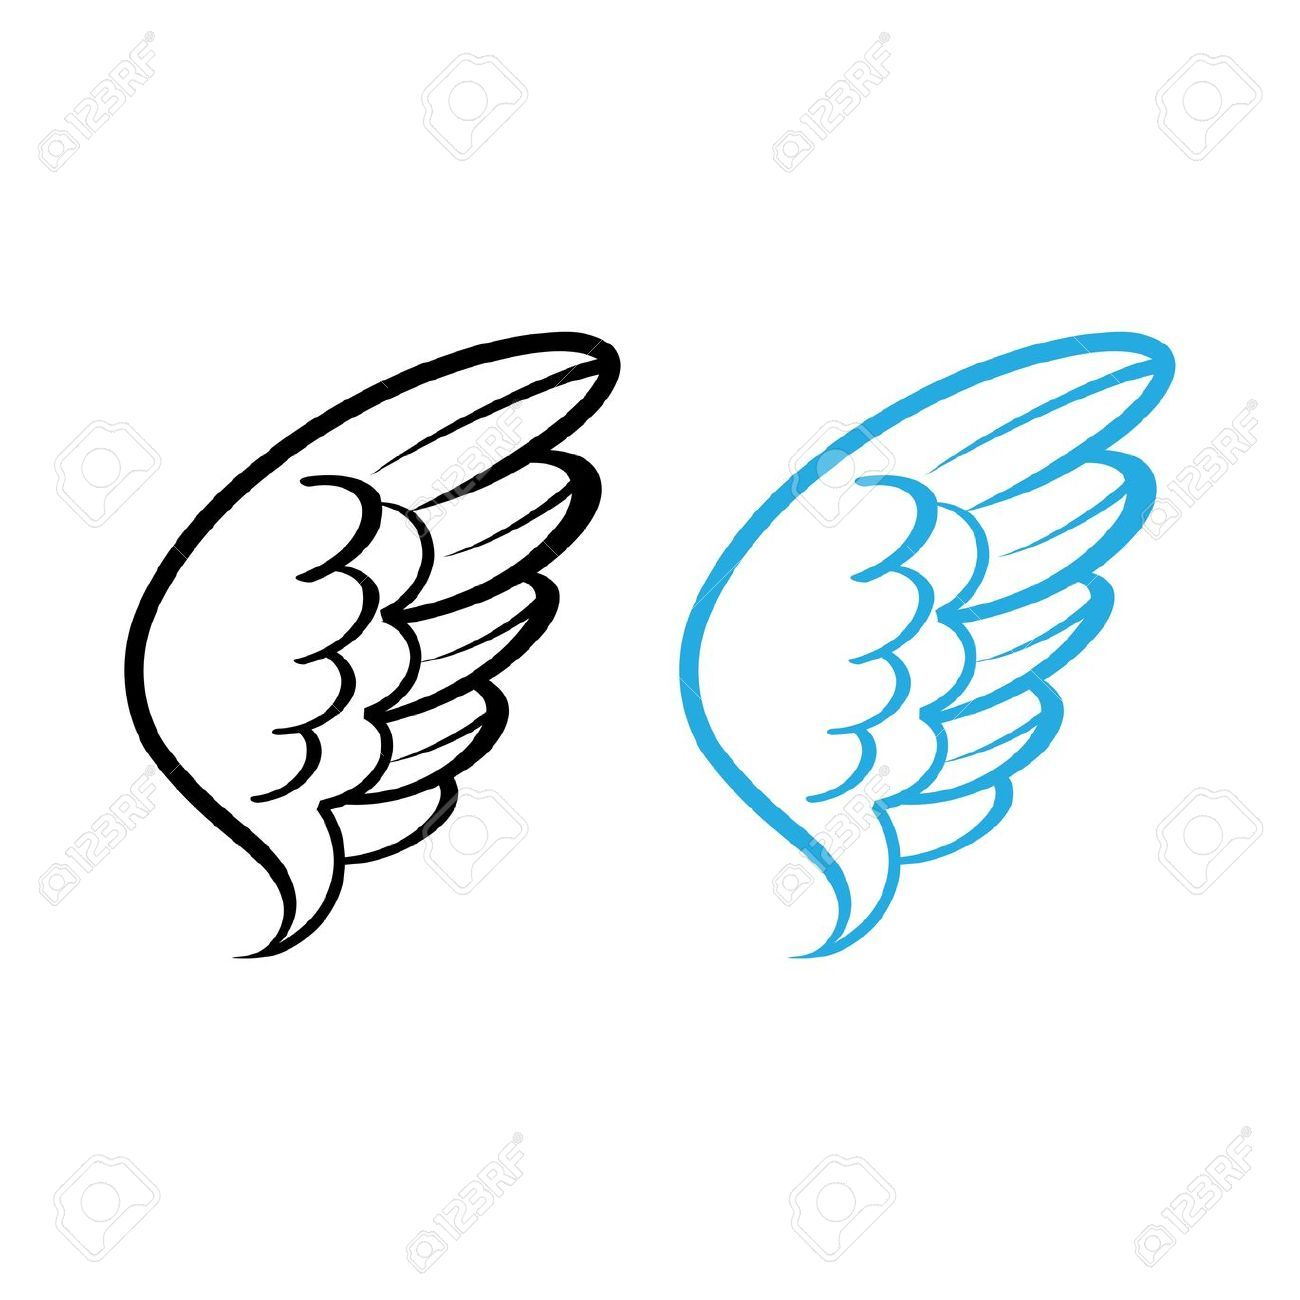 Simple Illustration Of Angels Google Search Angel Wings Clip Art Bird Wings Vector Illustration